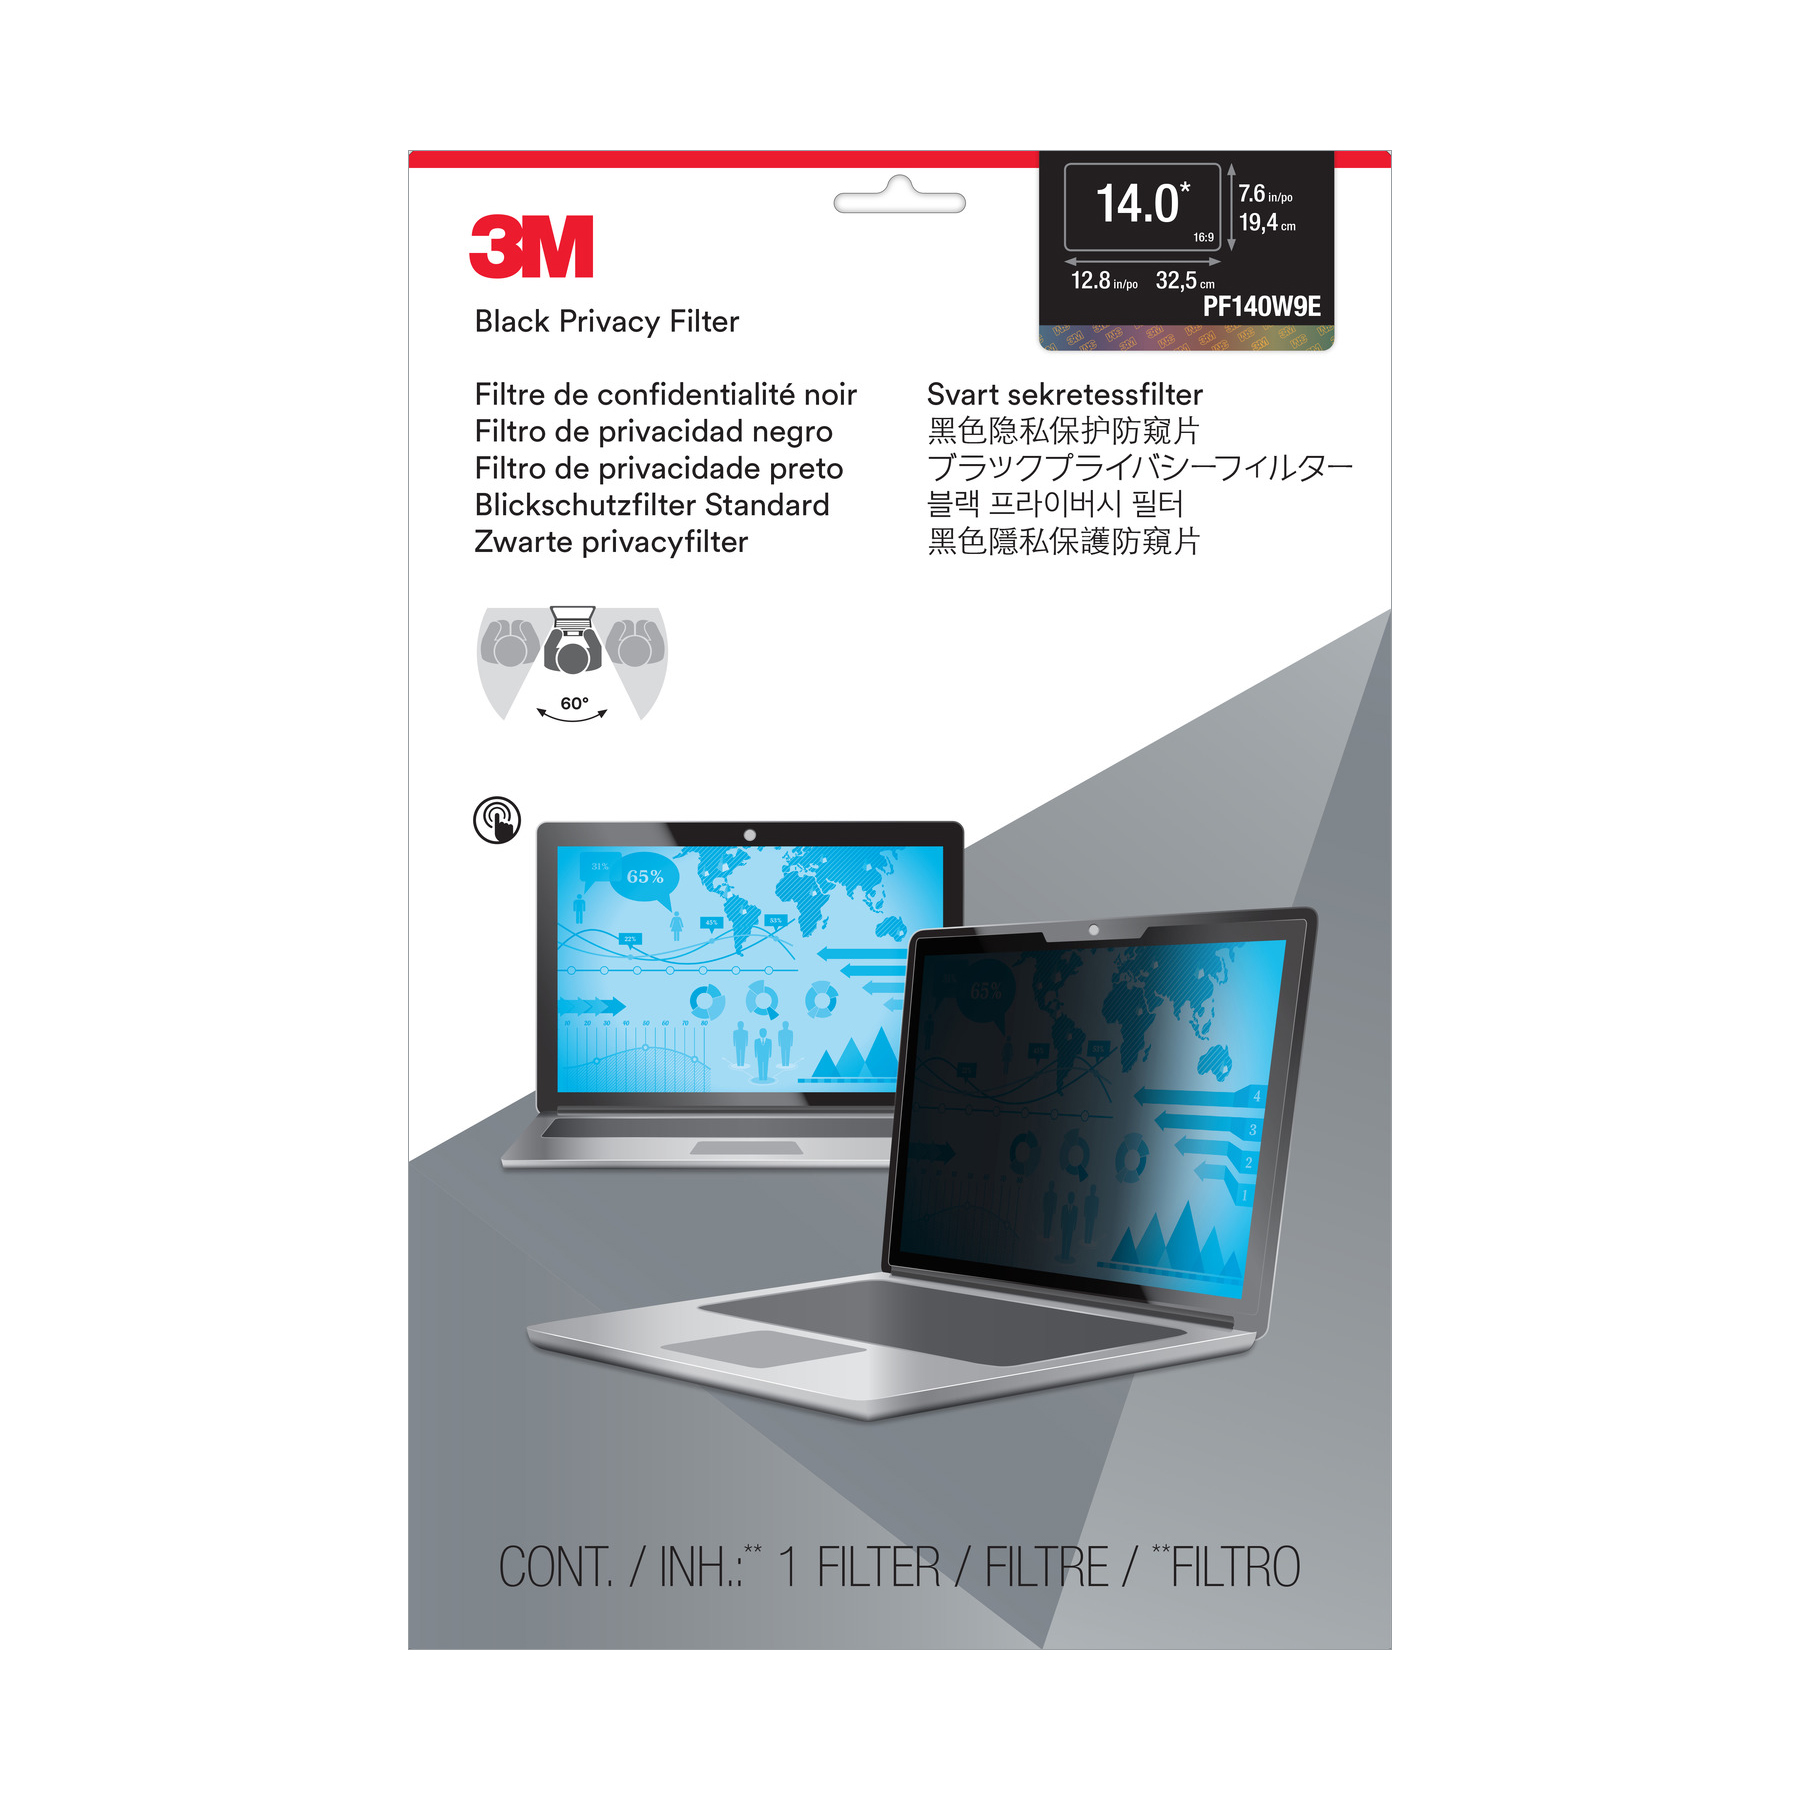 3M Blackout WideScreen Edge-to-Edge Laptop  Privacy Filter 14inch Ref PF140W9E